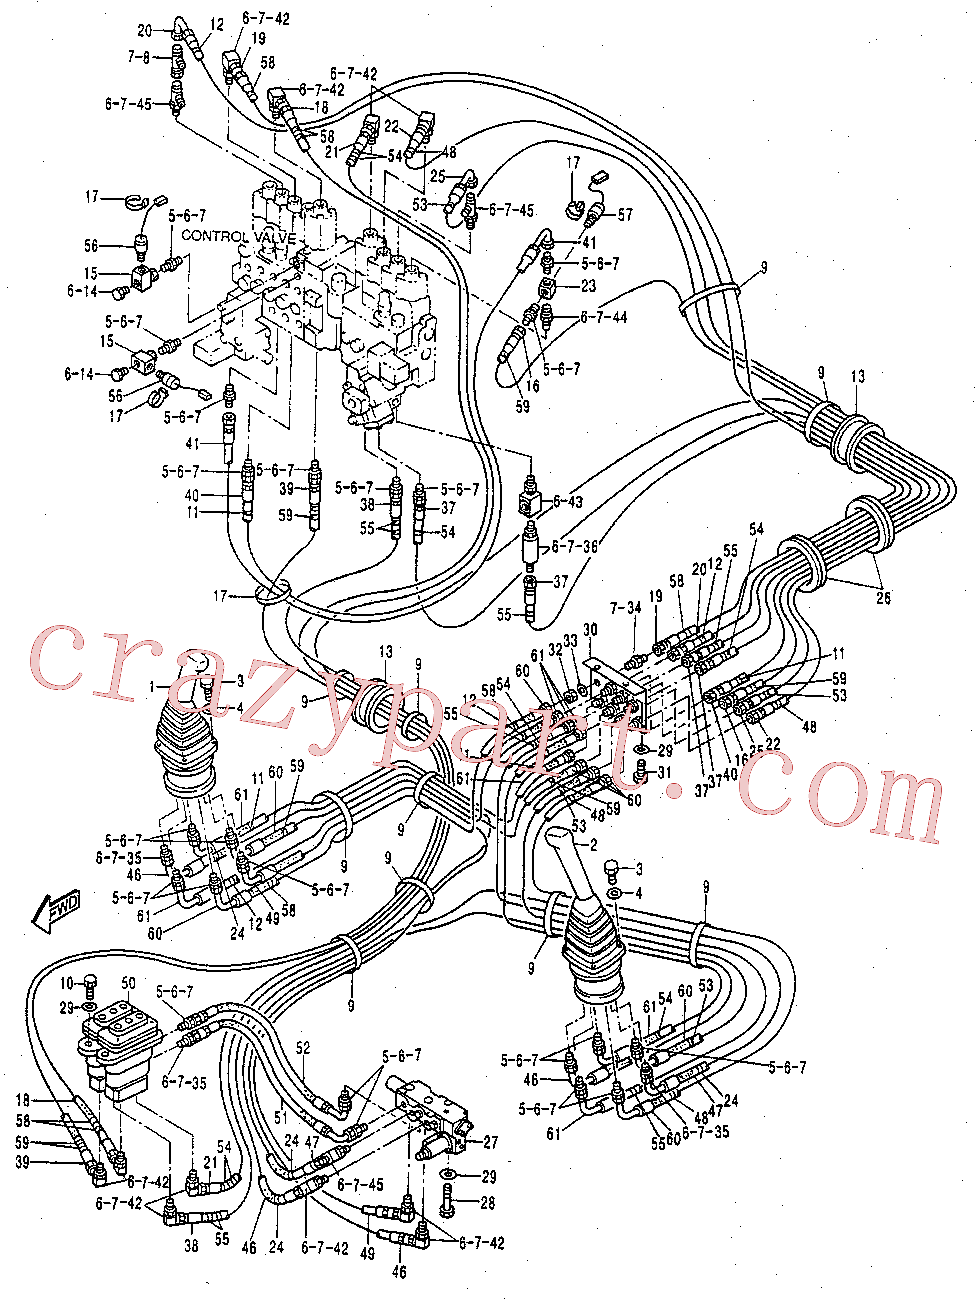 CAT 104-8771 for 319D L Excavator(EXC) hydraulic system 119-2390 Assembly